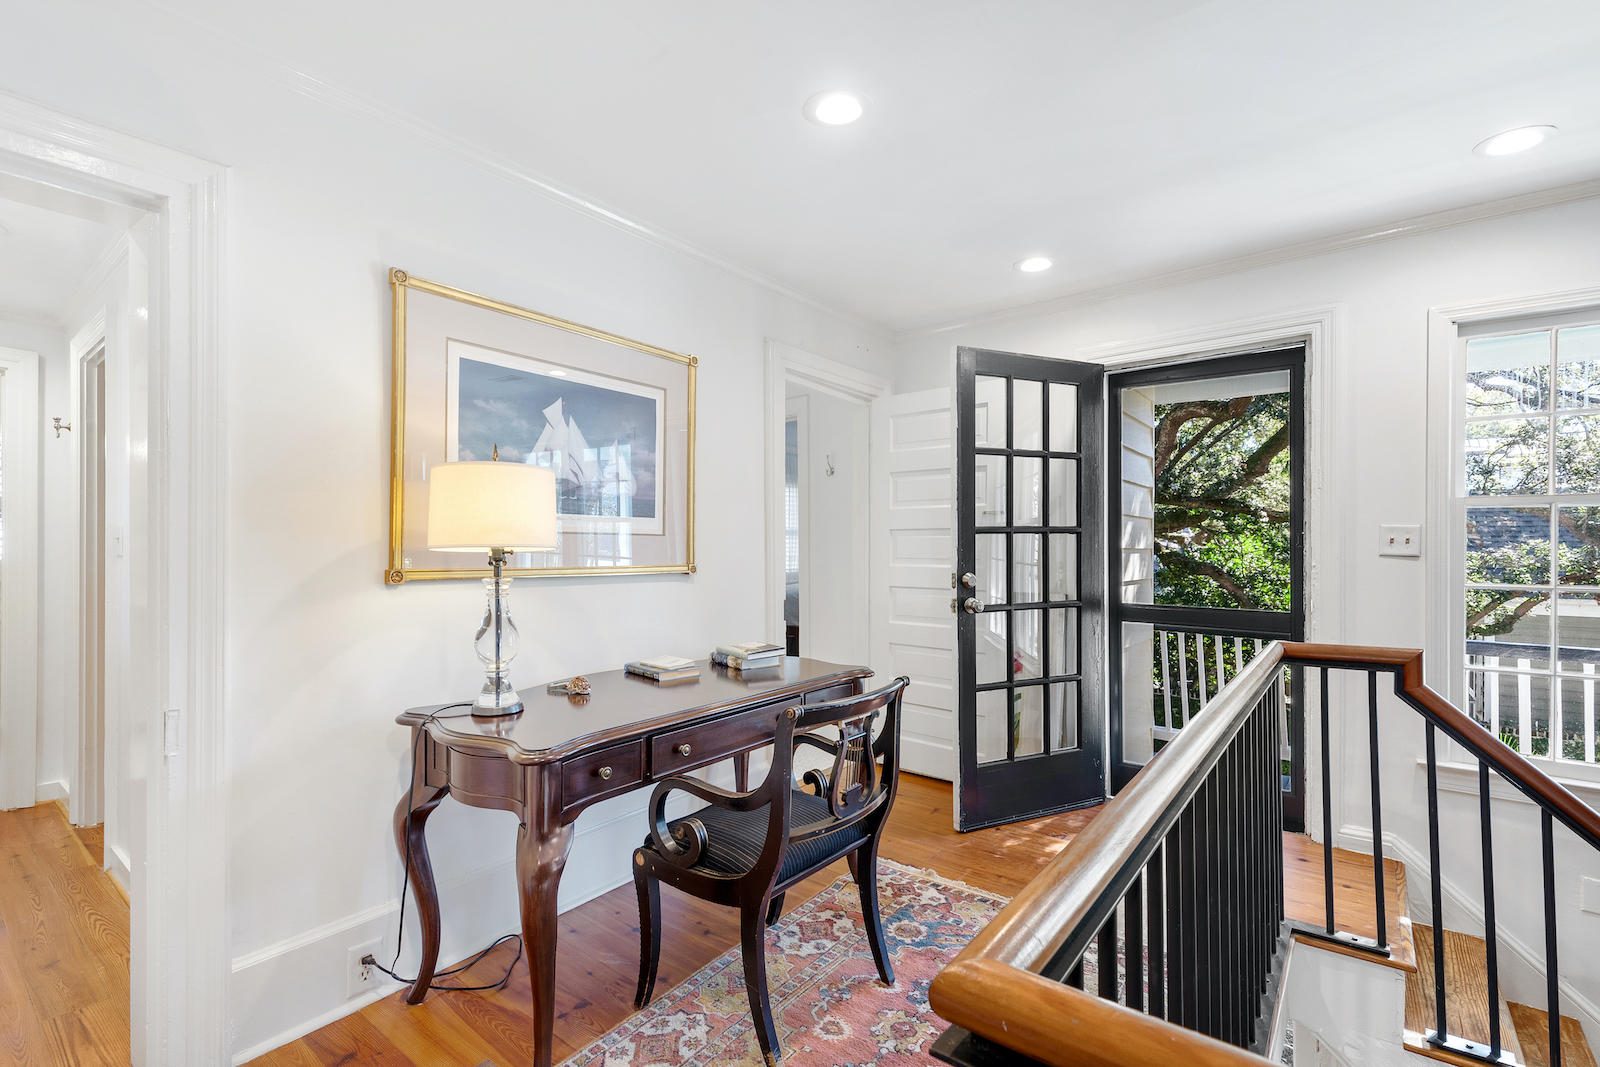 South of Broad Homes For Sale - 12 Council, Charleston, SC - 4